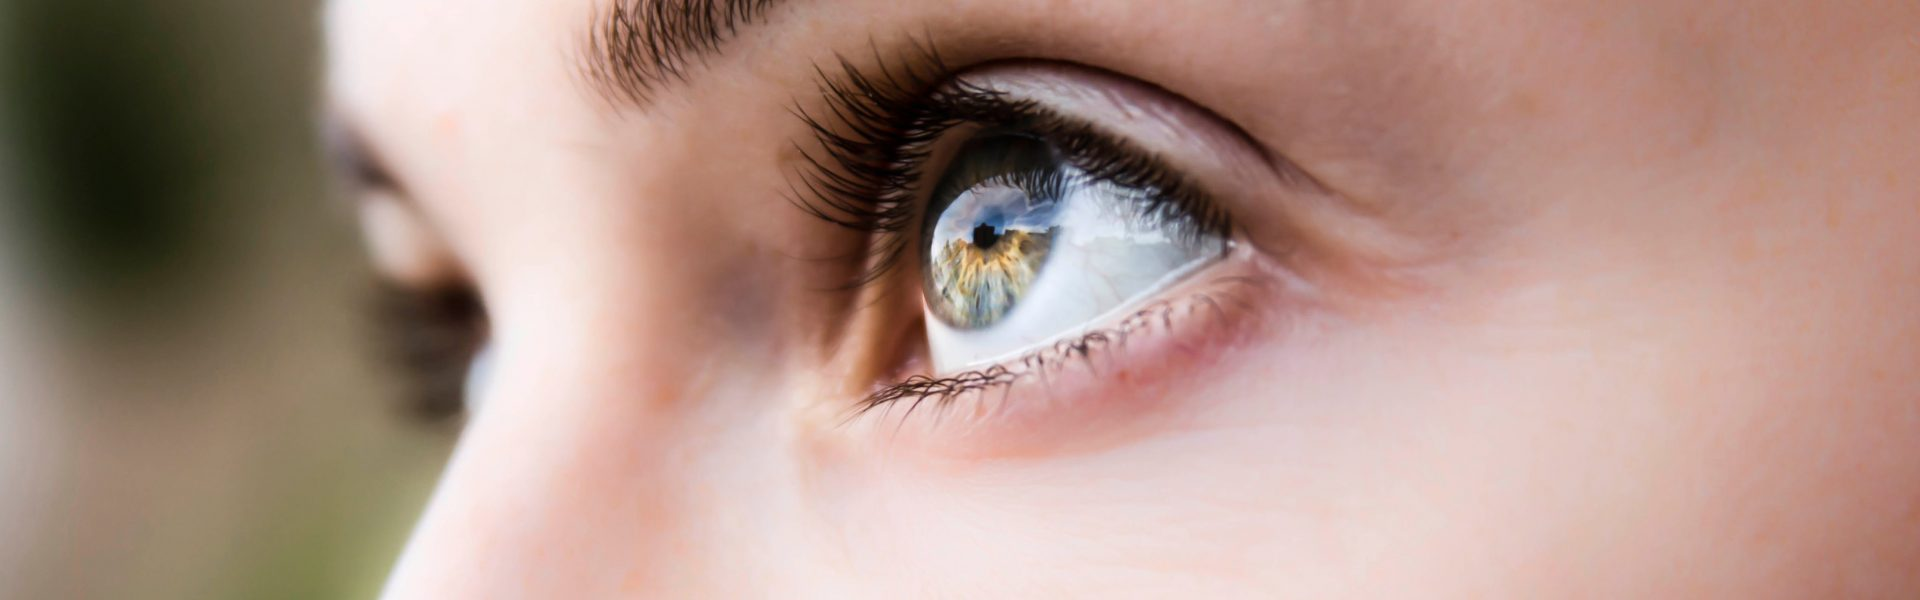 5 Eye Symptoms That Can Signal A Health Problem